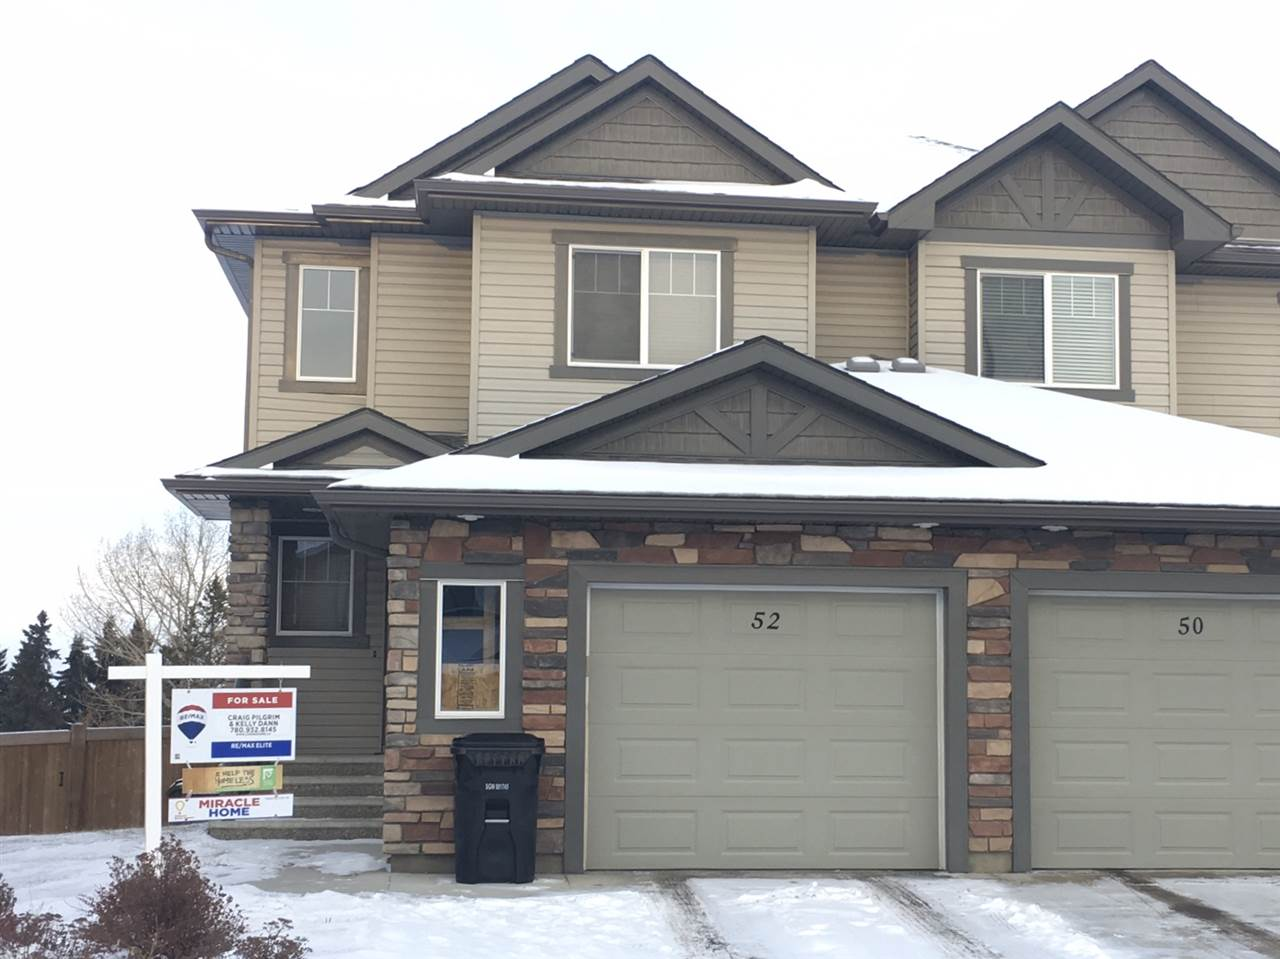 Welcome home to this fully developed, 1,313sqft, 3-bedroom, 3.5-bathroom, 2-storey half-duplex in Spruce Grove. Featuring a walk-out basement, cul-de-sac location with massive lot backing onto a green space and pond, and almost 1,900sqft of total developed living space. The kitchen is equipped with stainless steel appliances, gorgeous maple cabinetry, hardwood floors, a walk-in pantry, and an abundance of counter and cupboard space. There?s a raised breakfast bar eating area, which is open to the large family room and dining area. Step through the patio doors onto the massive deck with beautiful fall views of the pond and The Links golf course. The upper level offers an open tech area, the master bedroom with 3-piece ensuite bath, a 4-piece main bath, and 2 additional bedrooms. The basement is fully developed and hosts a laundry area, 3-piece bathroom, and large living room. Other great features include a deep single attached garage and neutral colours through out. Come home!